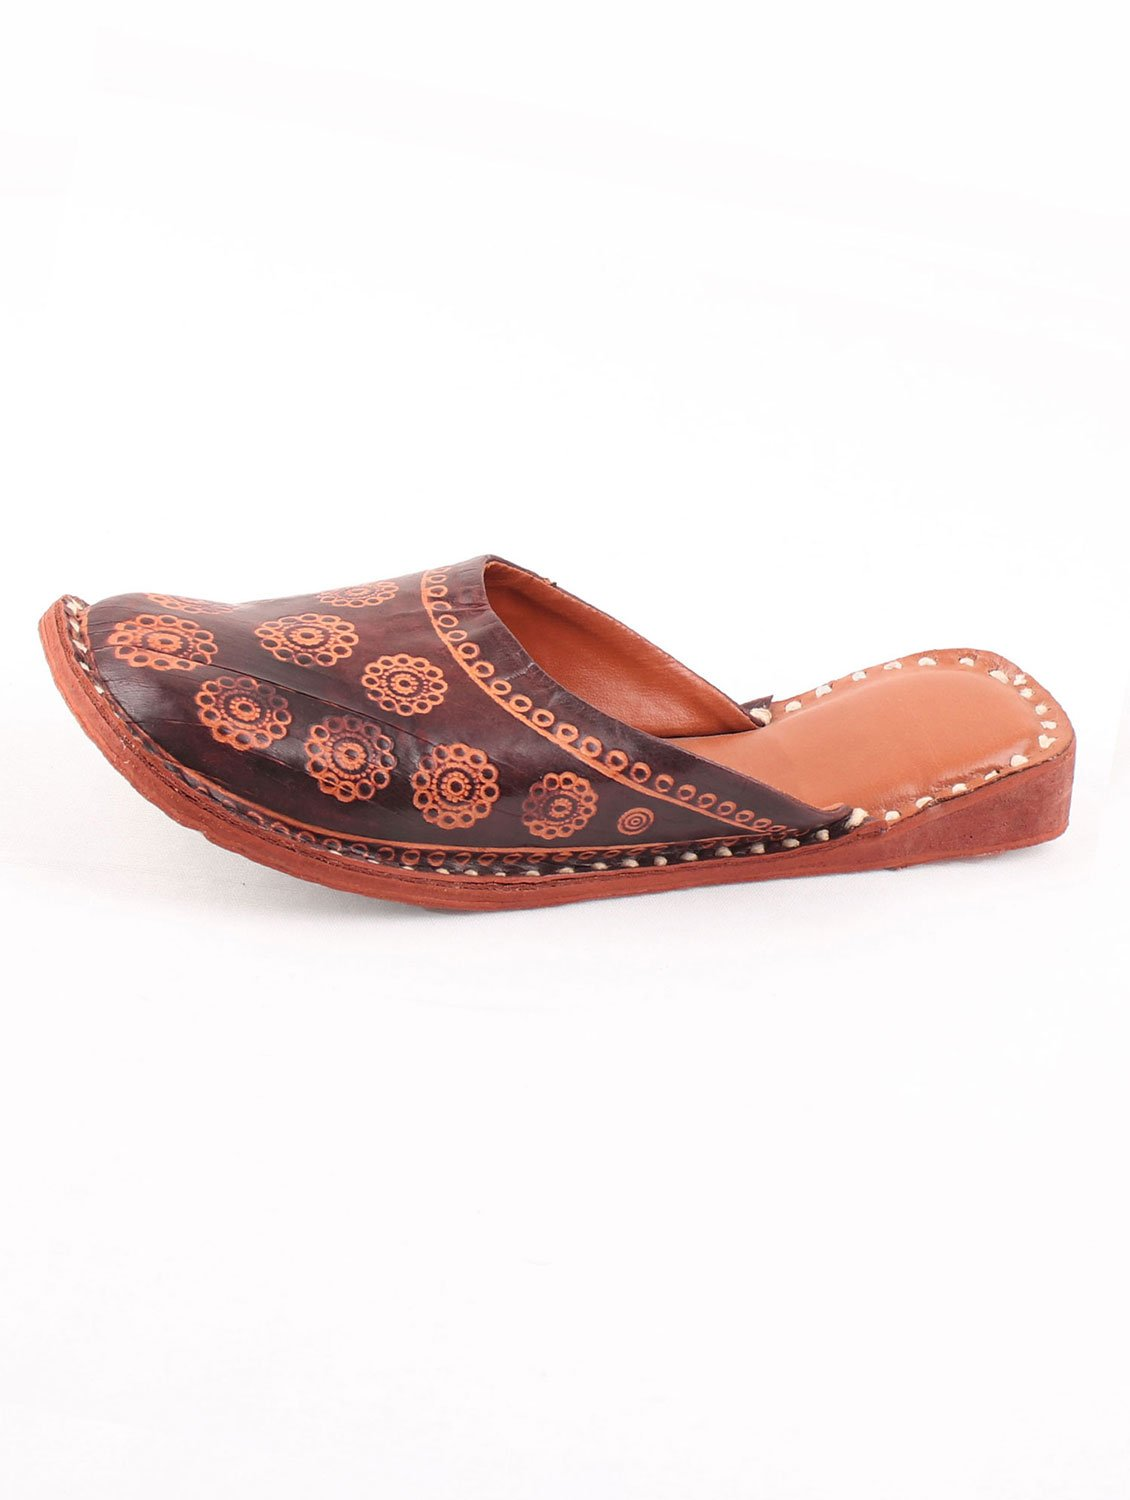 OUTLANDISH PRINTED MULES